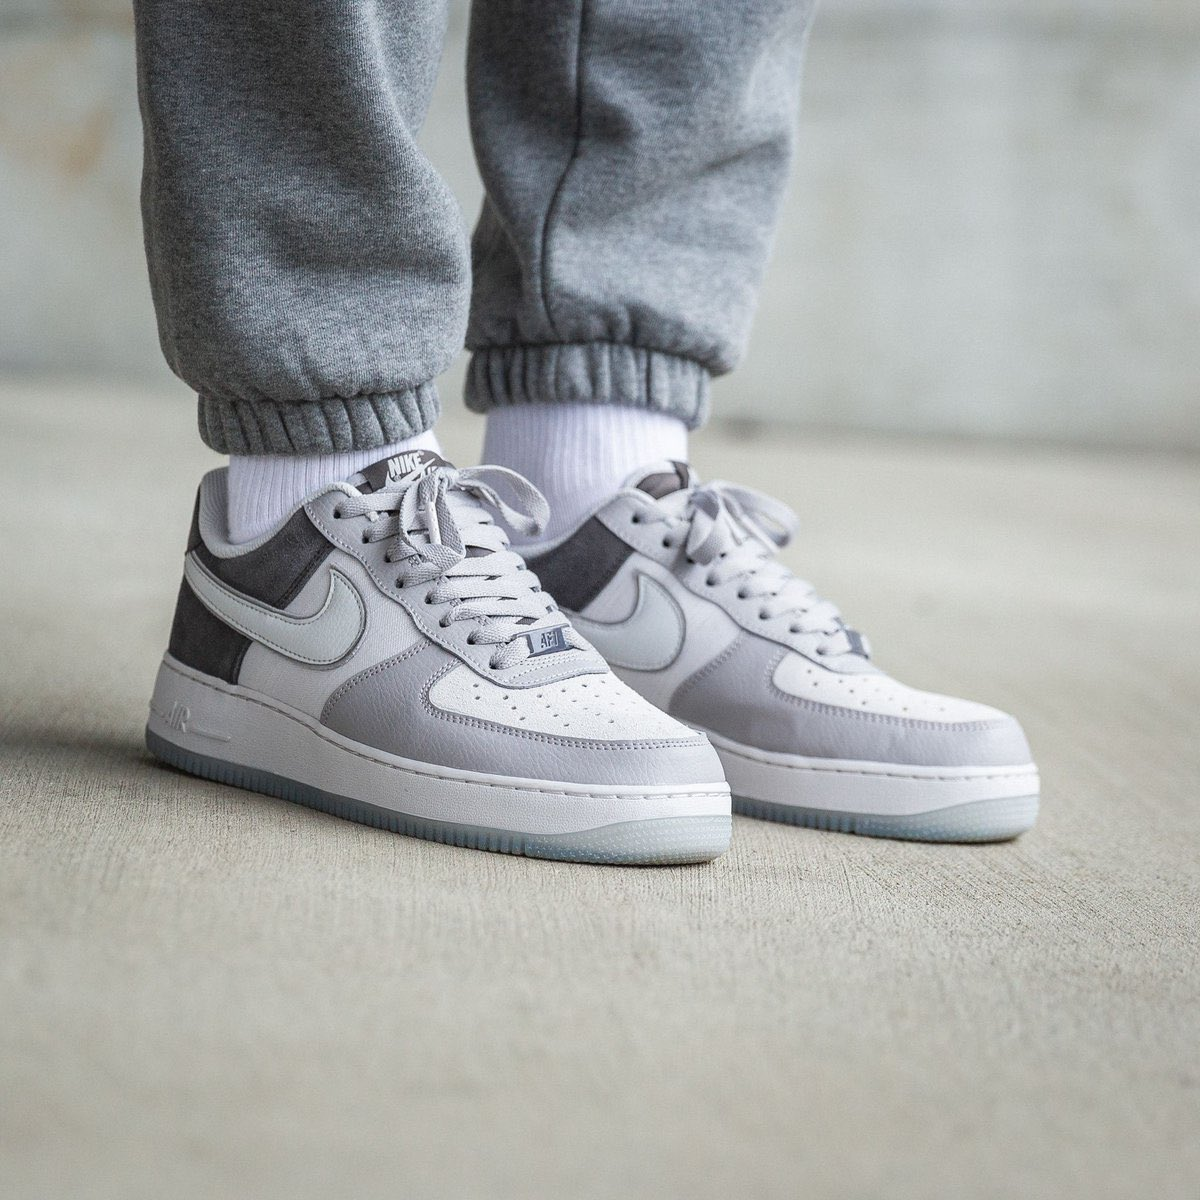 SHIPPING: Nike Air Force 1 '07 LV8